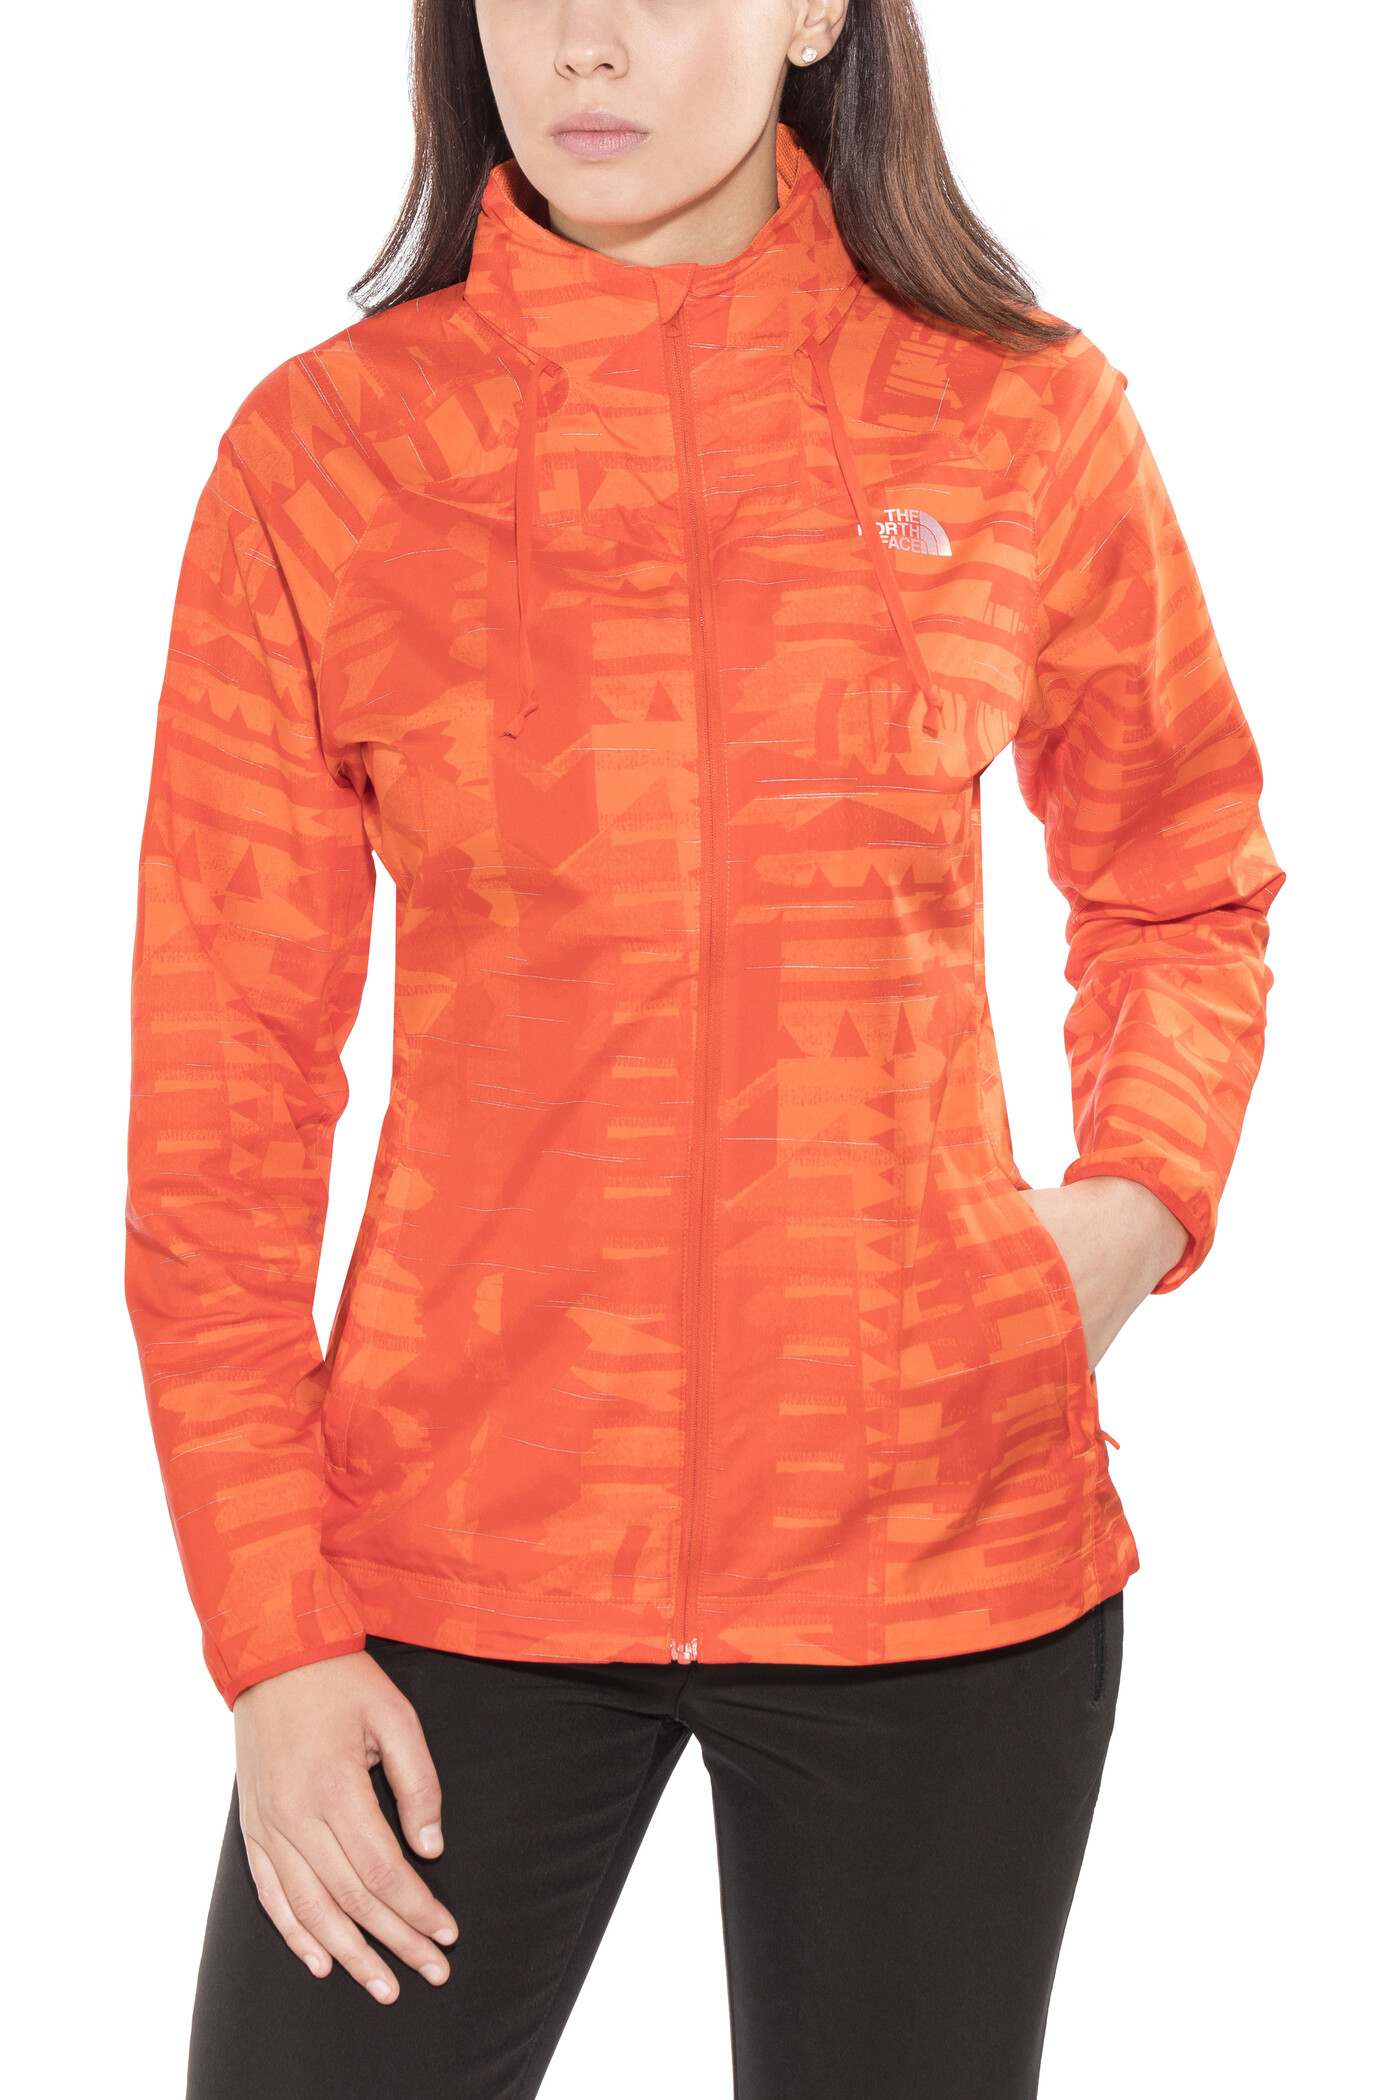 3c661c42f6 The North Face W s Rapida Woven Windproof Jacket Fire Brick Red Rf Print.jpg